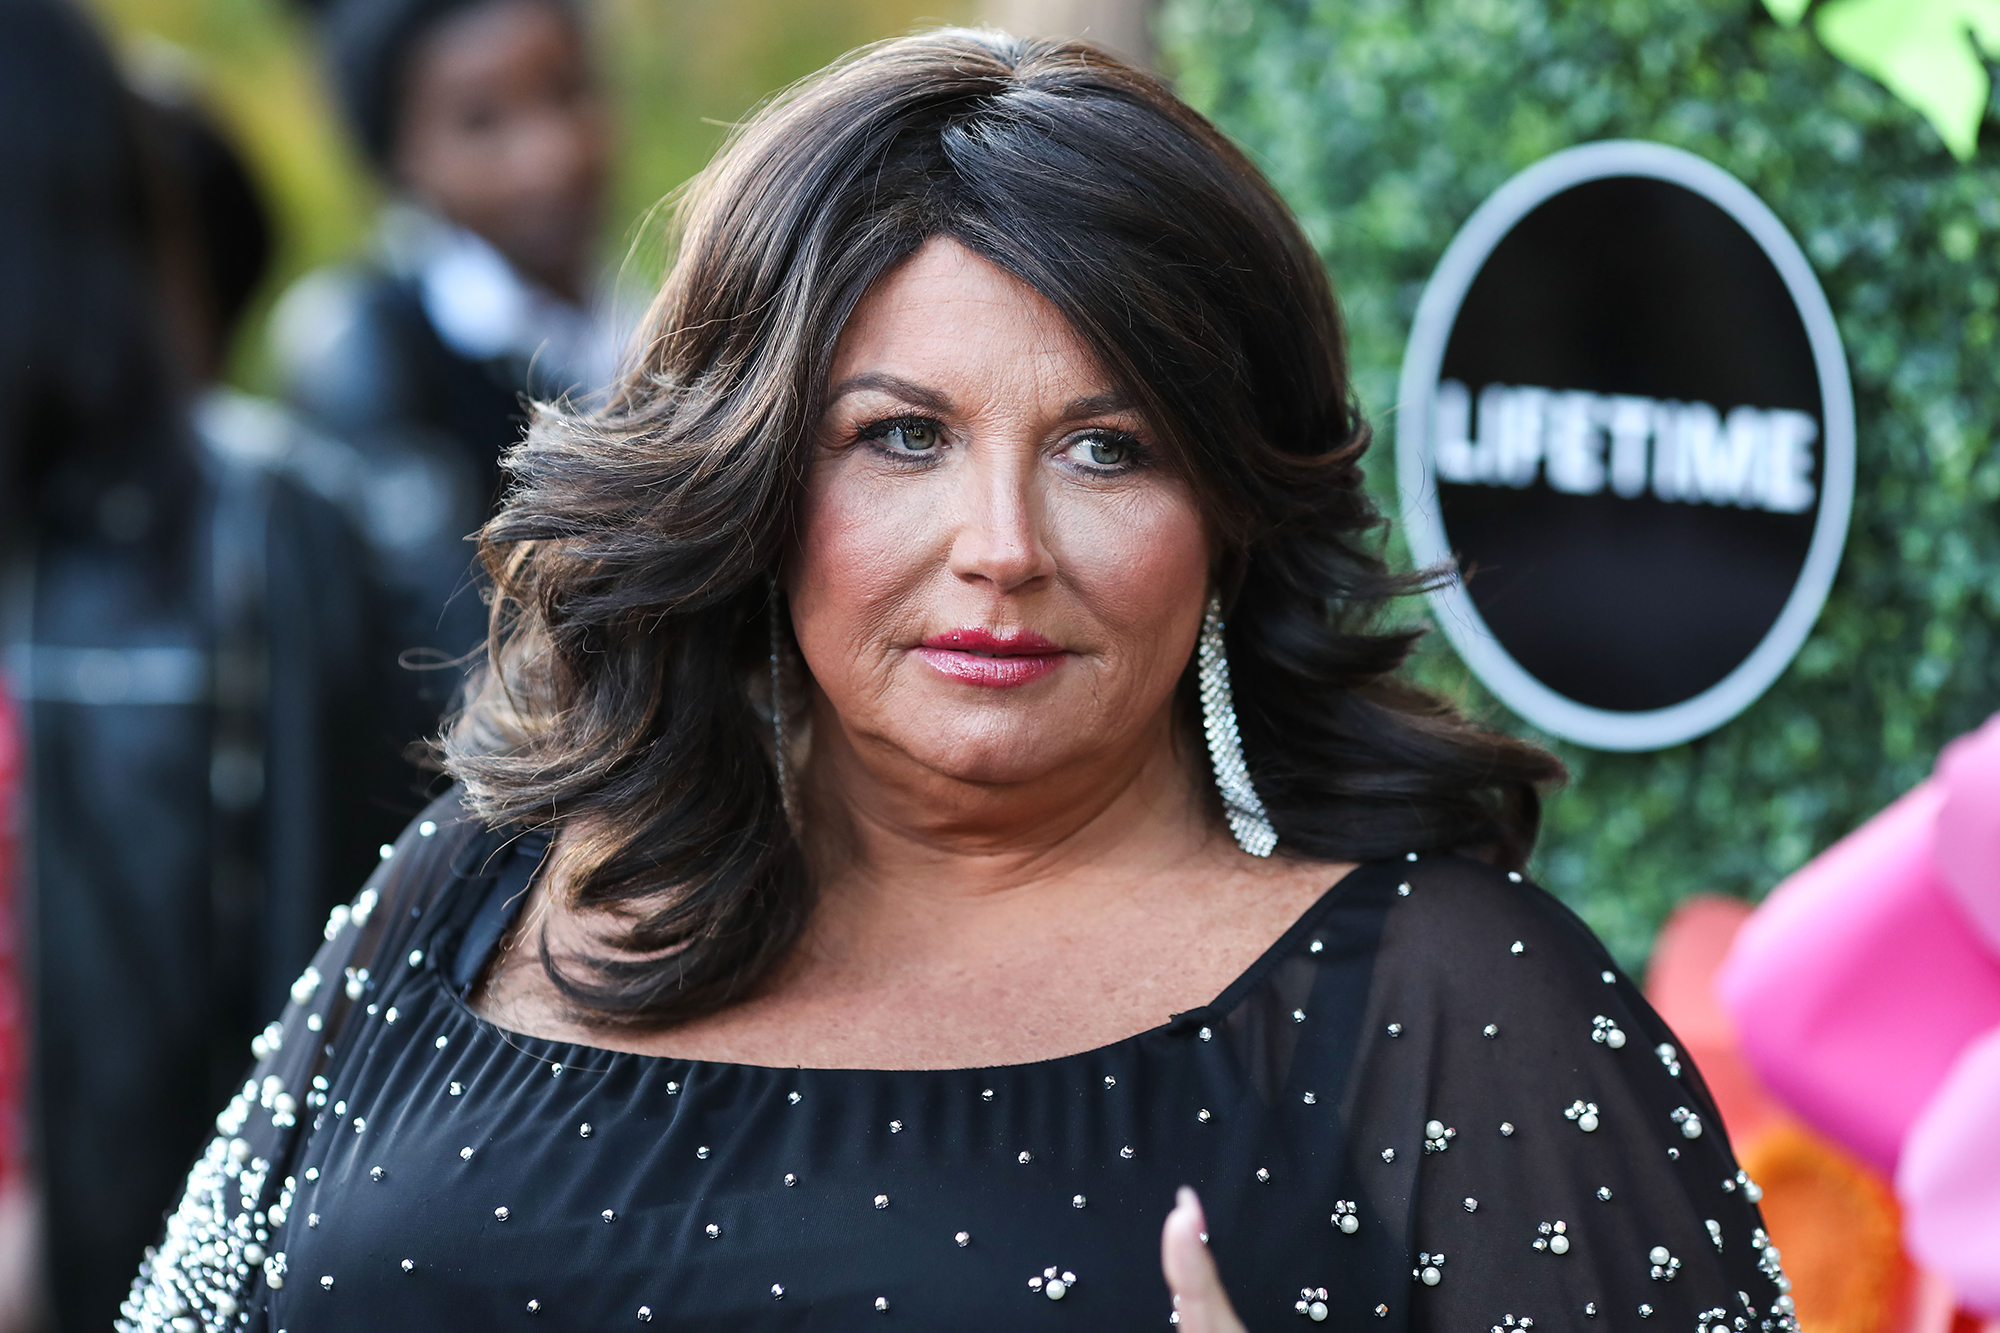 Abby Lee Miller's Lifetime Series Canceled After Controversial Racist Remarks on 'Dance Moms' Were Revealed